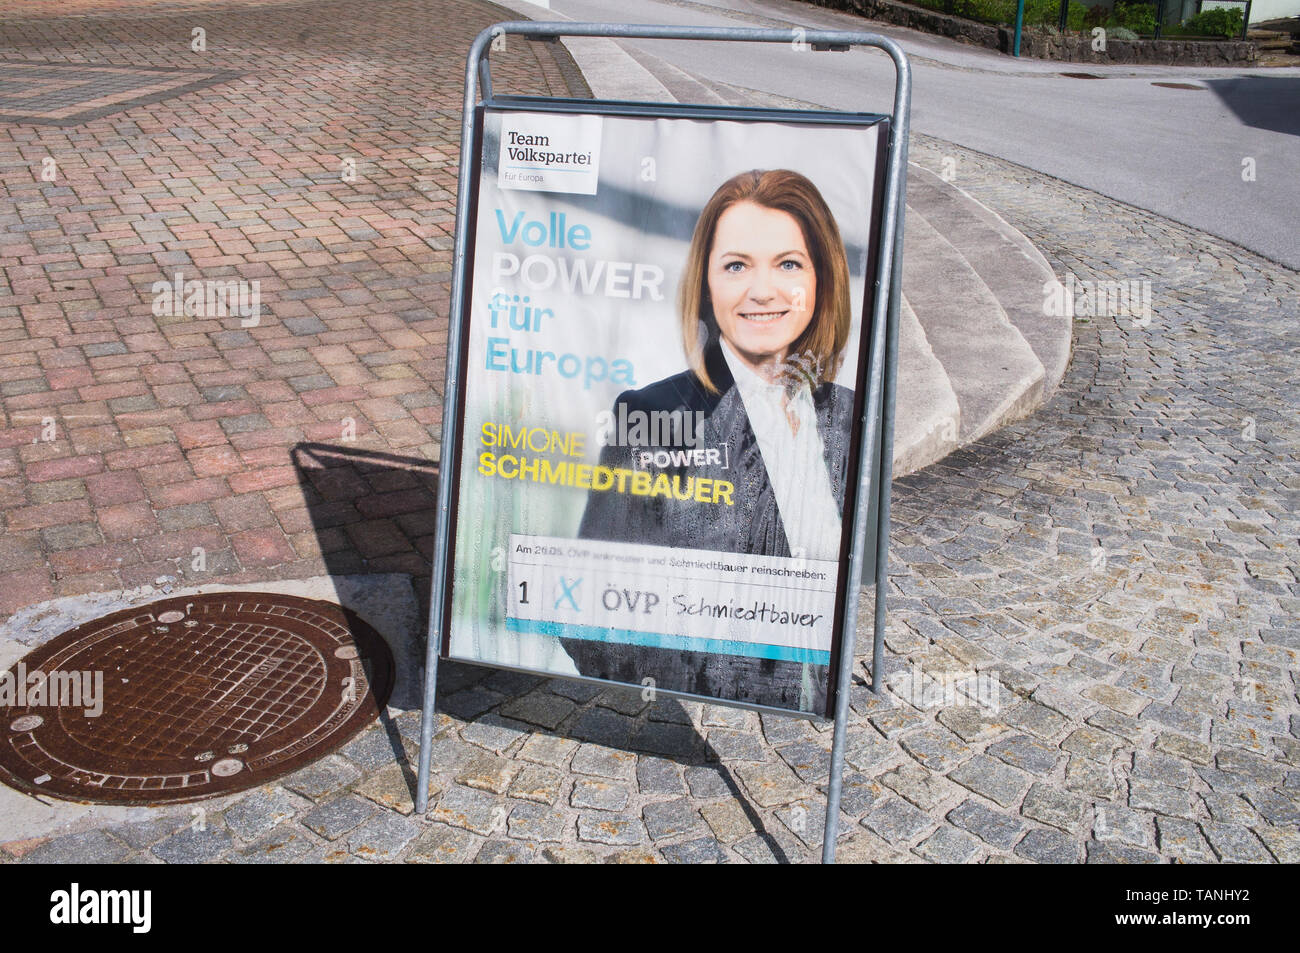 Poster of OVP, Simone Schmiedtbauer, pre-election campaign for 2019 European Parliament election in Hallstatt, Austria, May 24, 2019.  (CTK Photo/Libo - Stock Image